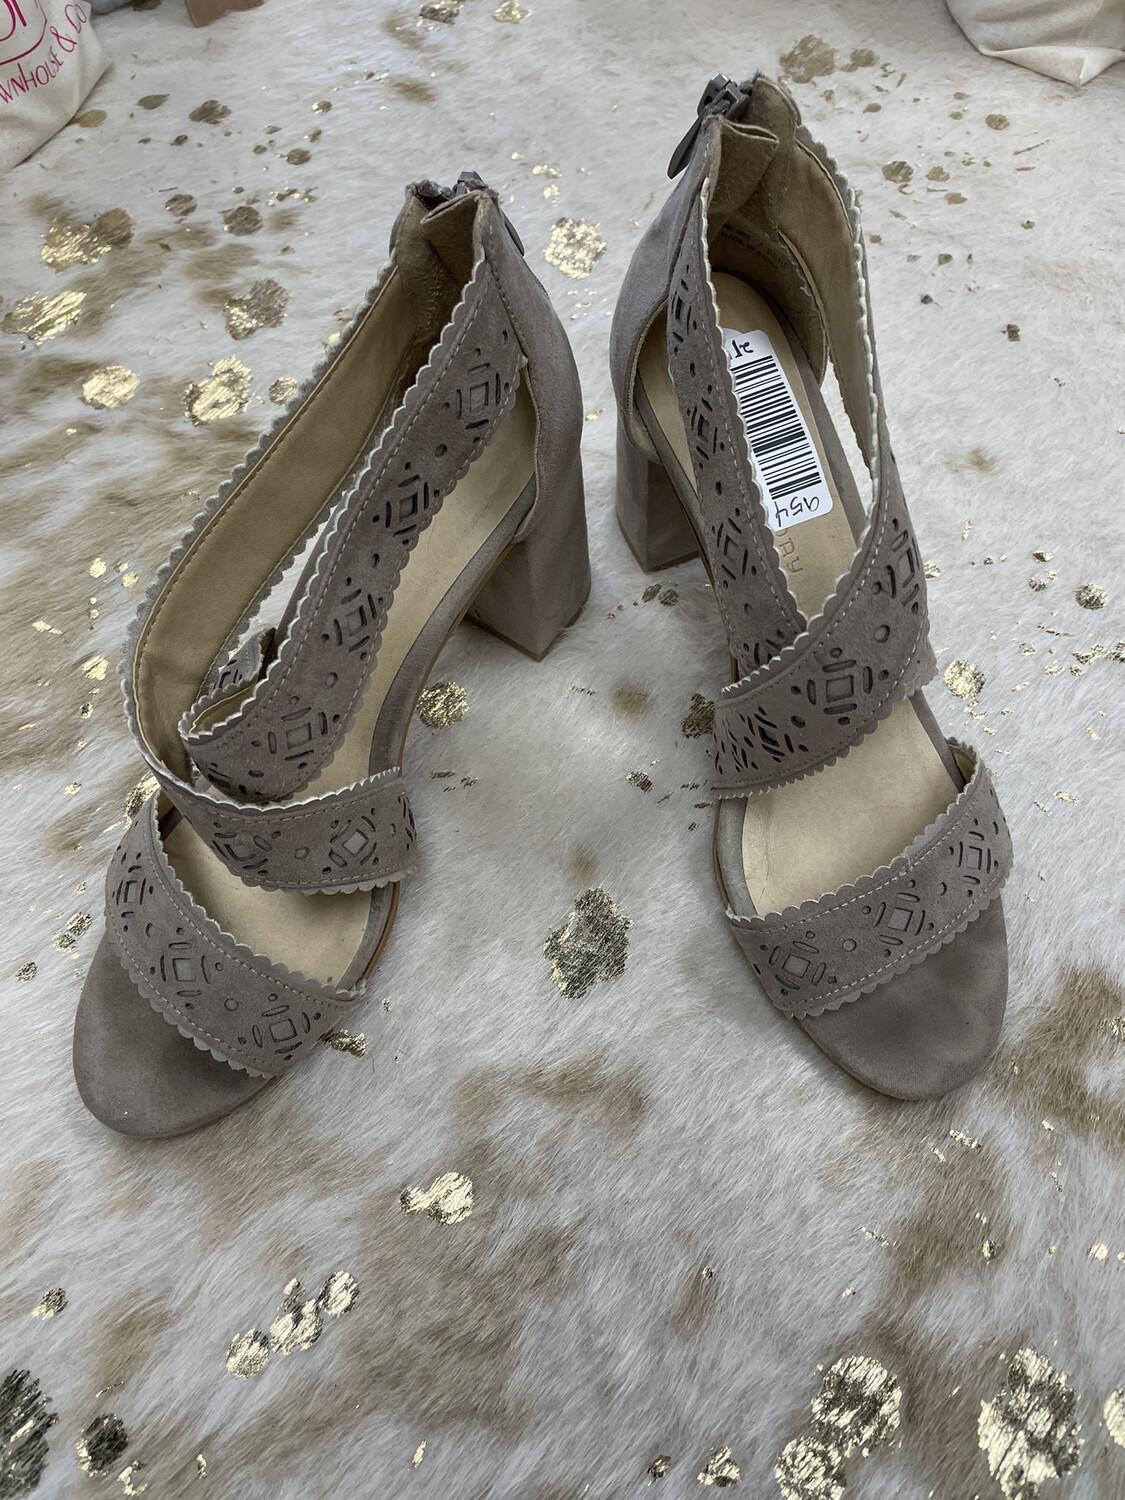 Chinese Laundry Tan Strappy Suede Sandal Block Heels - Size 7.5